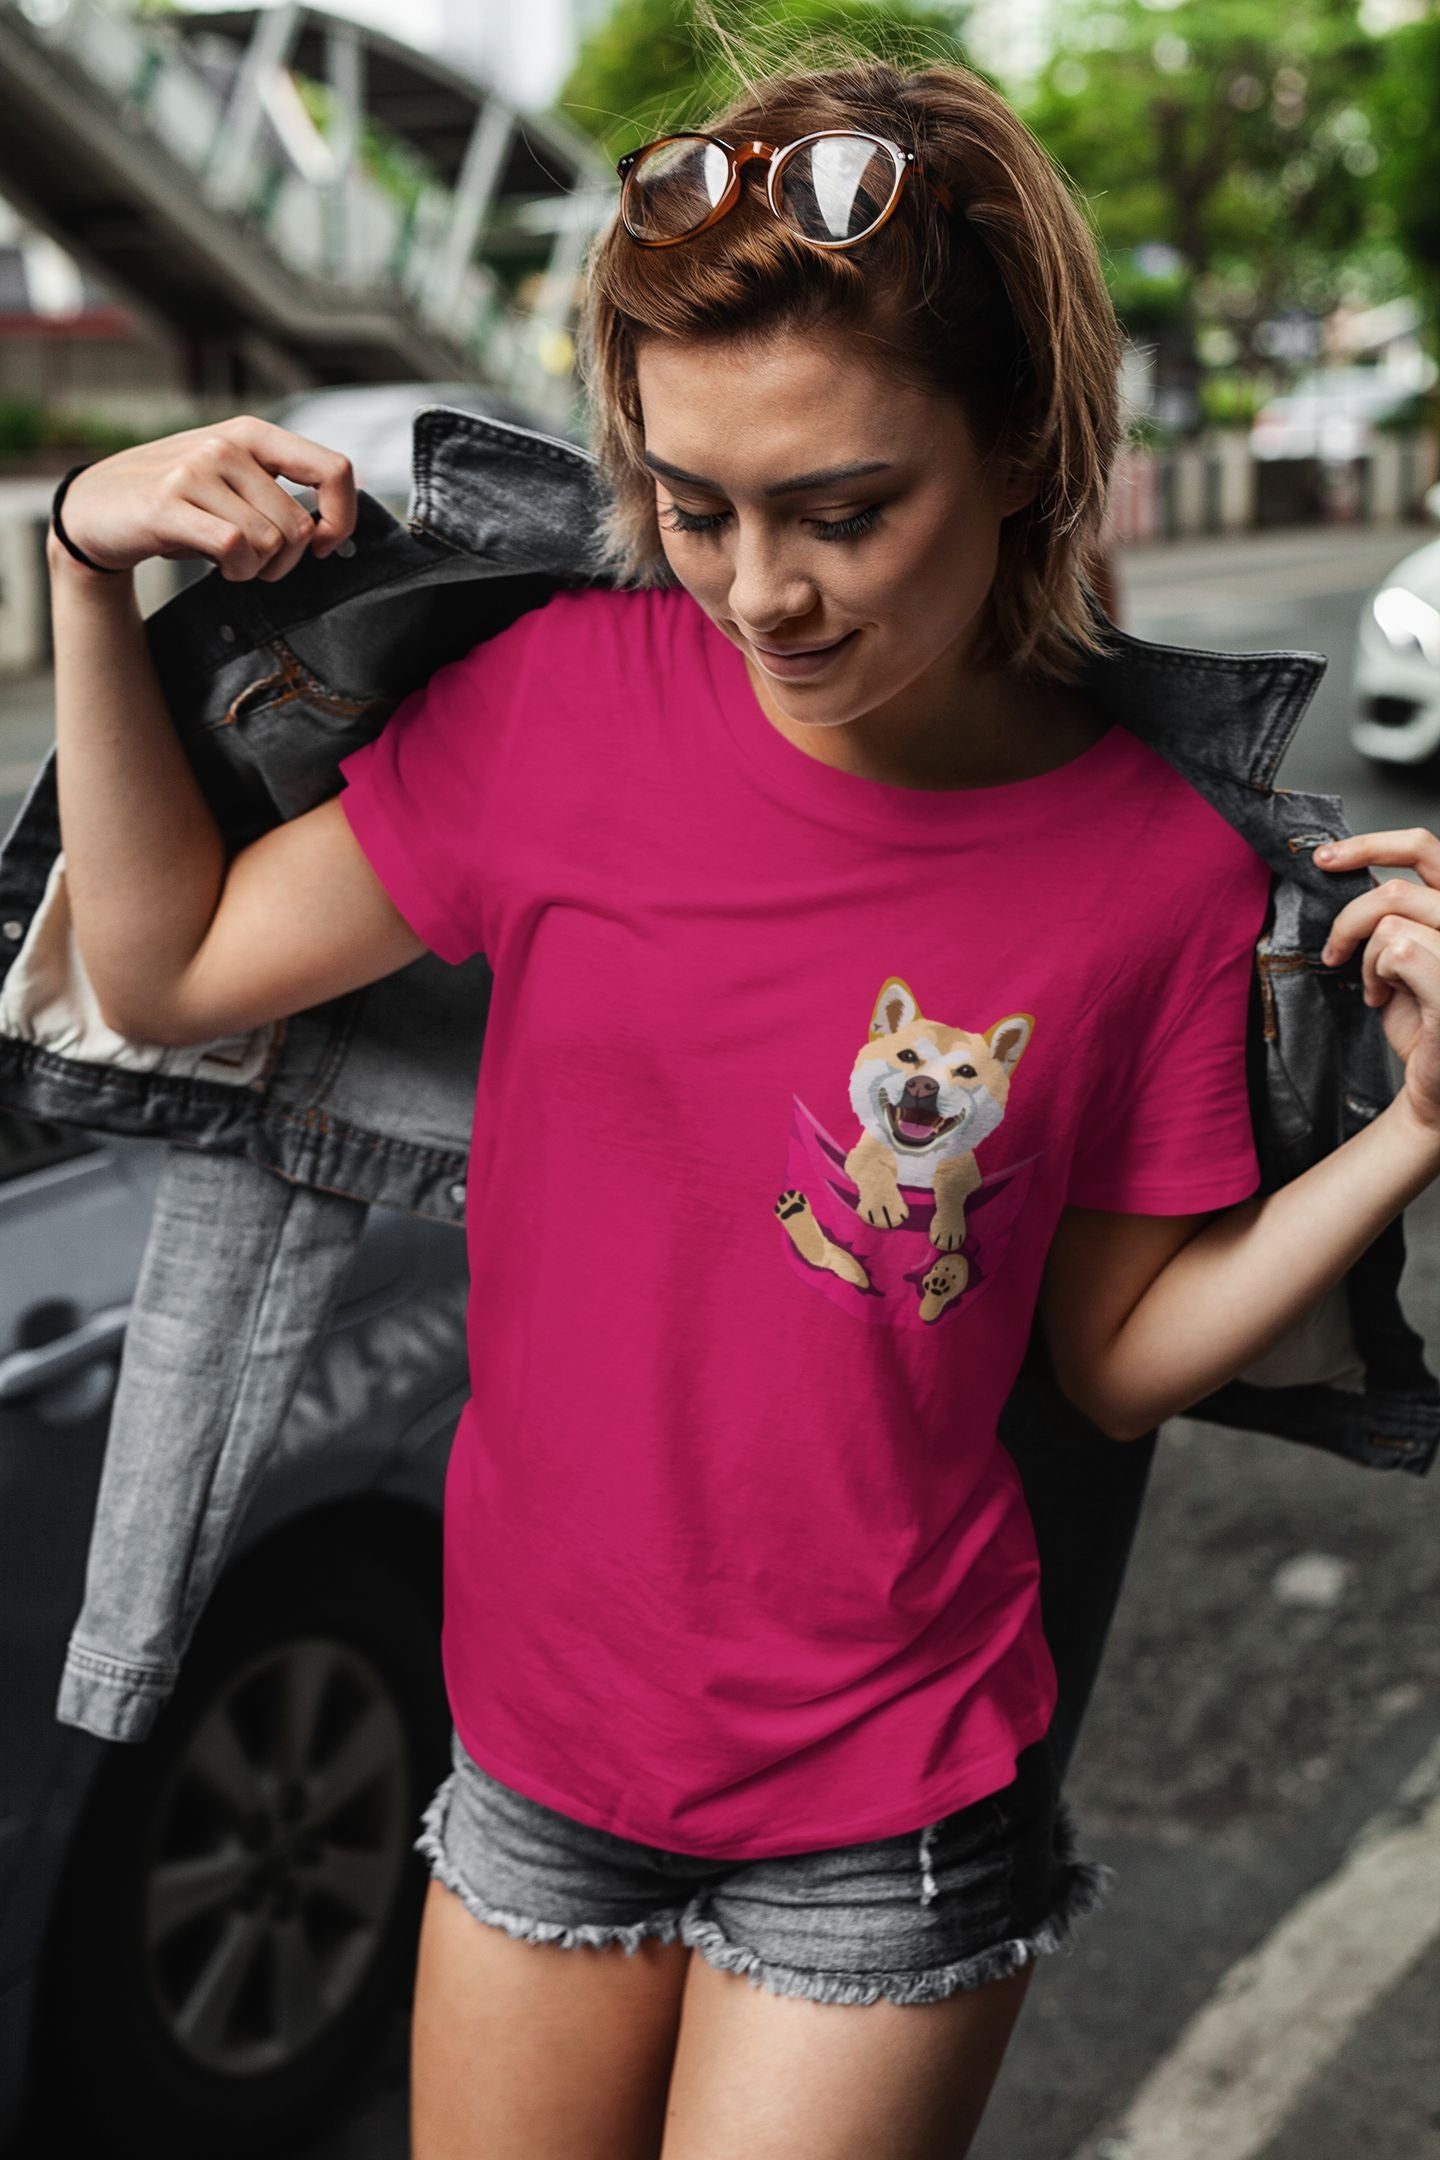 Pocket Buddies Ladies Jersey Short Sleeve Tee